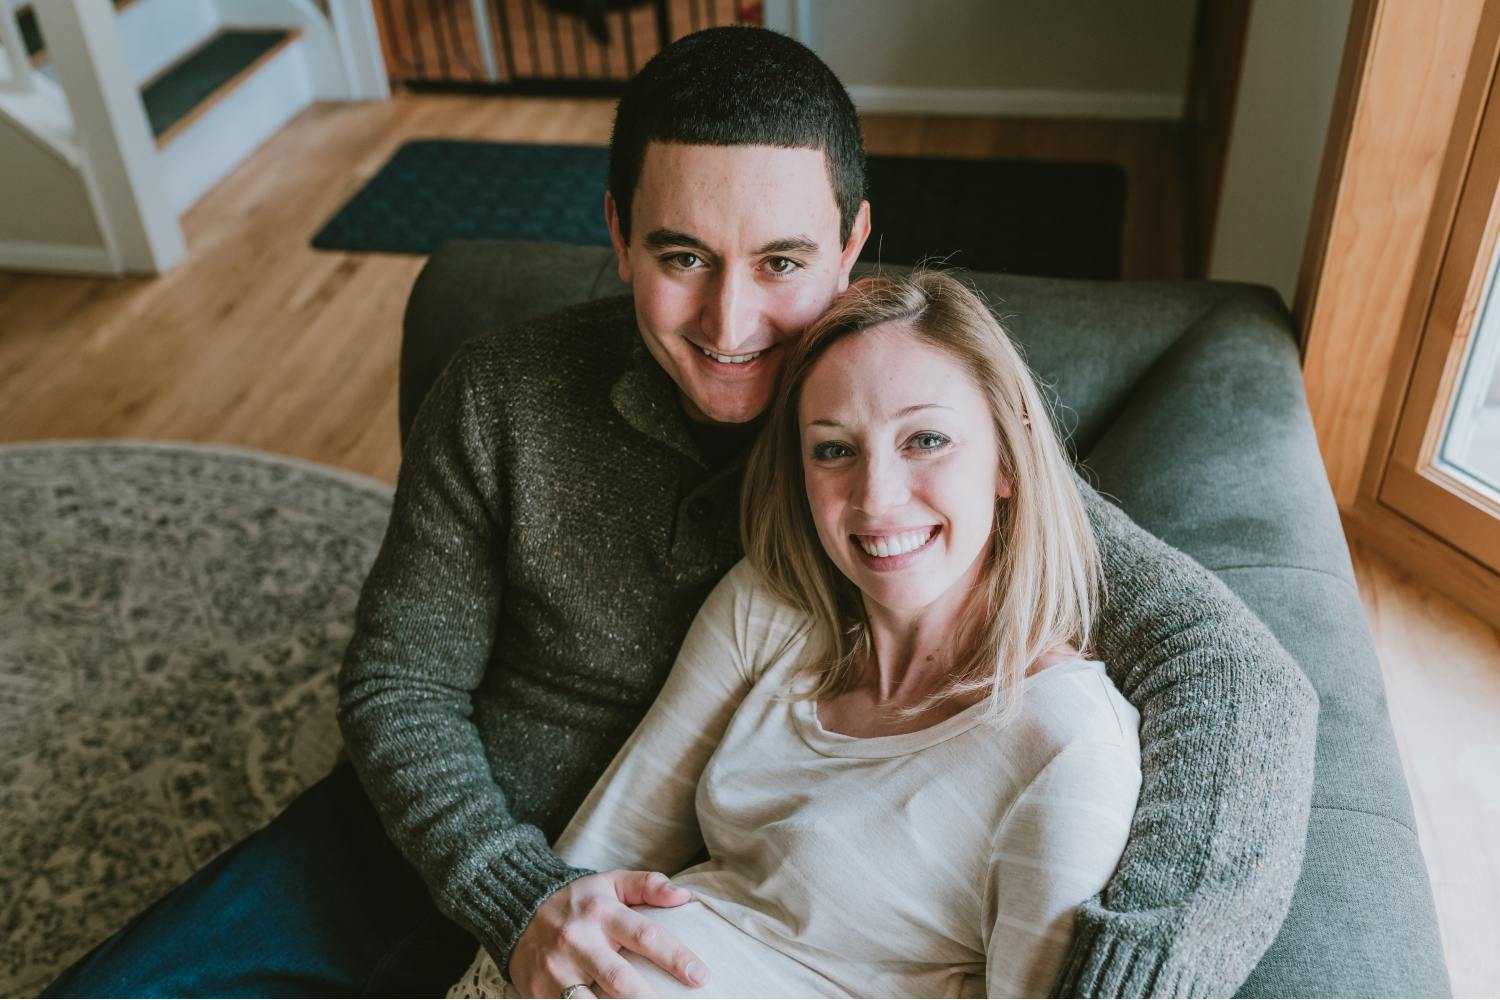 Couple-Maternity-Pictures-In-Home-Morris-County